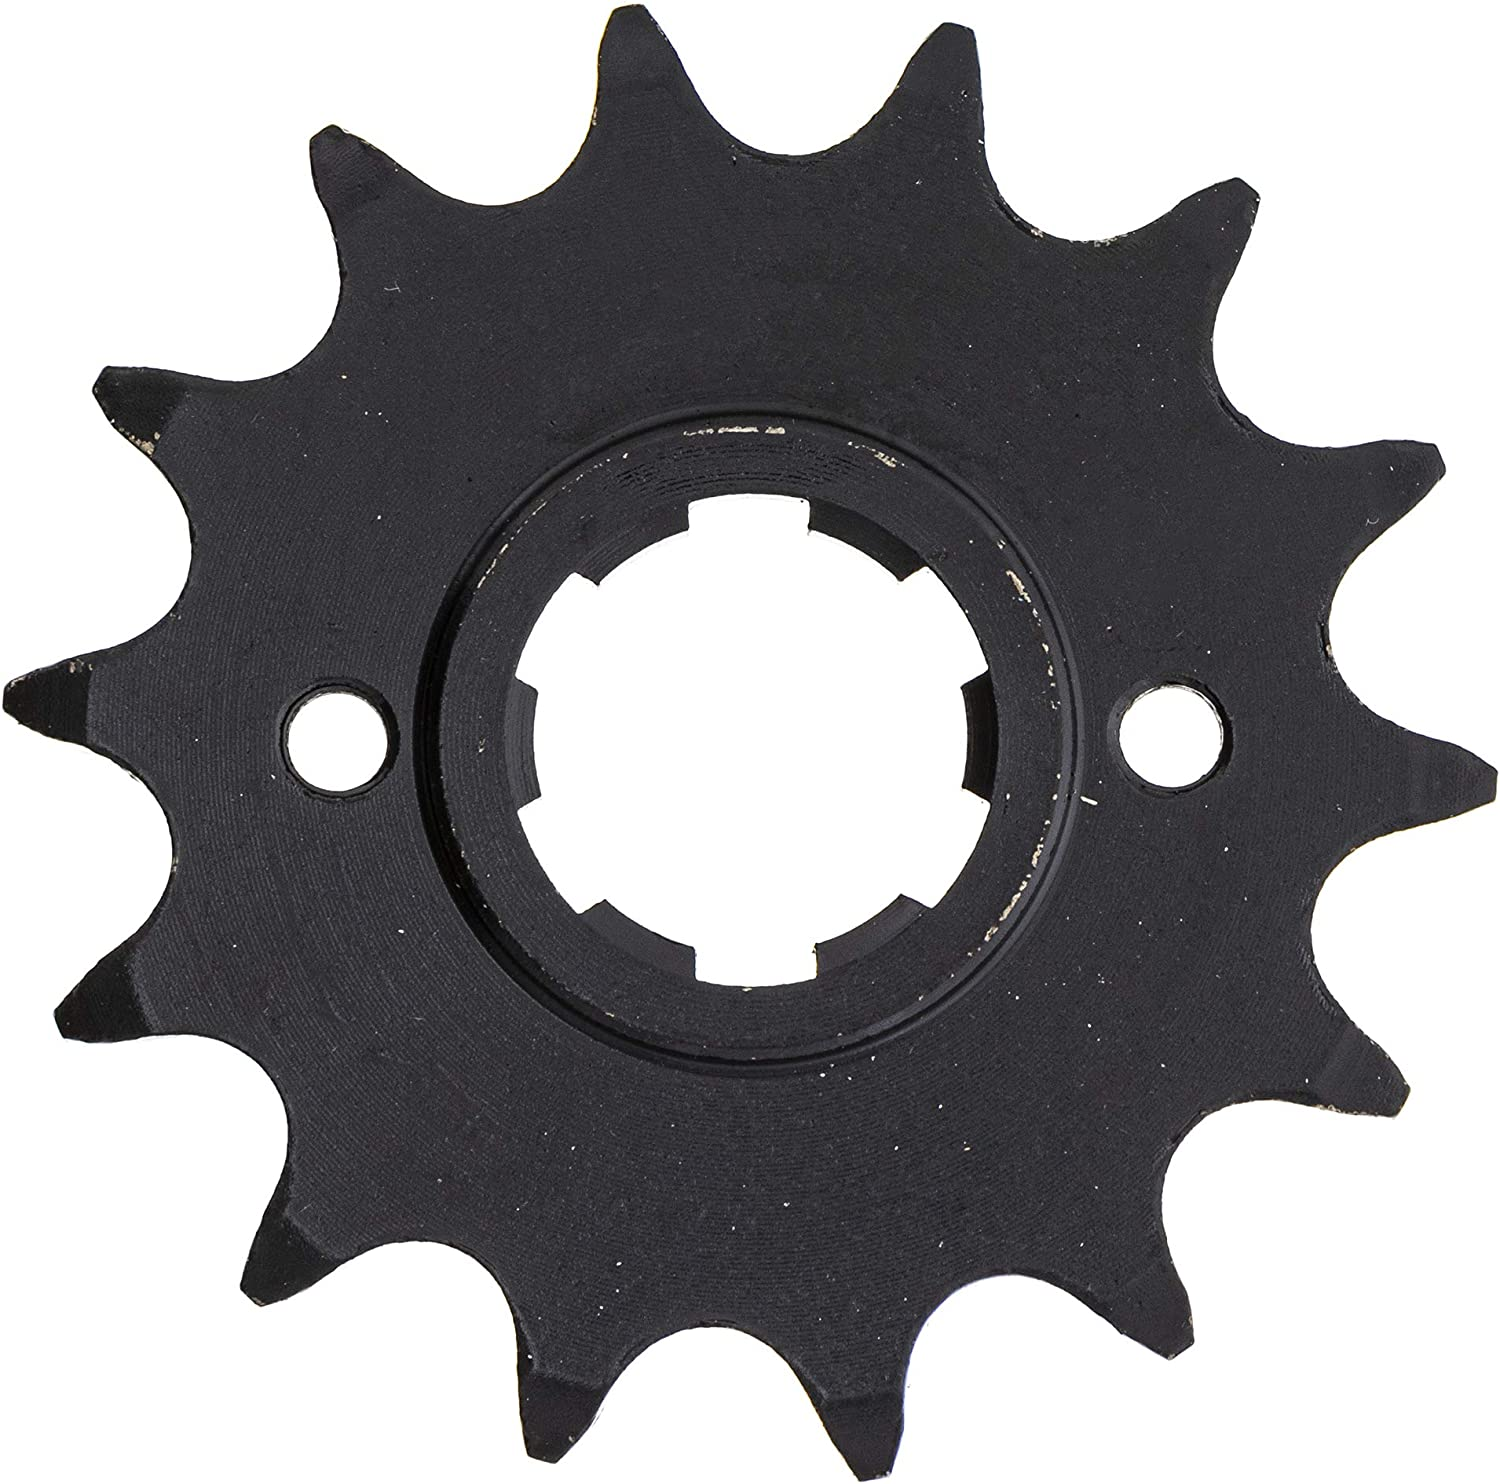 NICHE Drive Sprocket Chain Combo for Honda XR500 XR500R Front 14 Rear 48 Tooth 520V O-Ring 104 Links